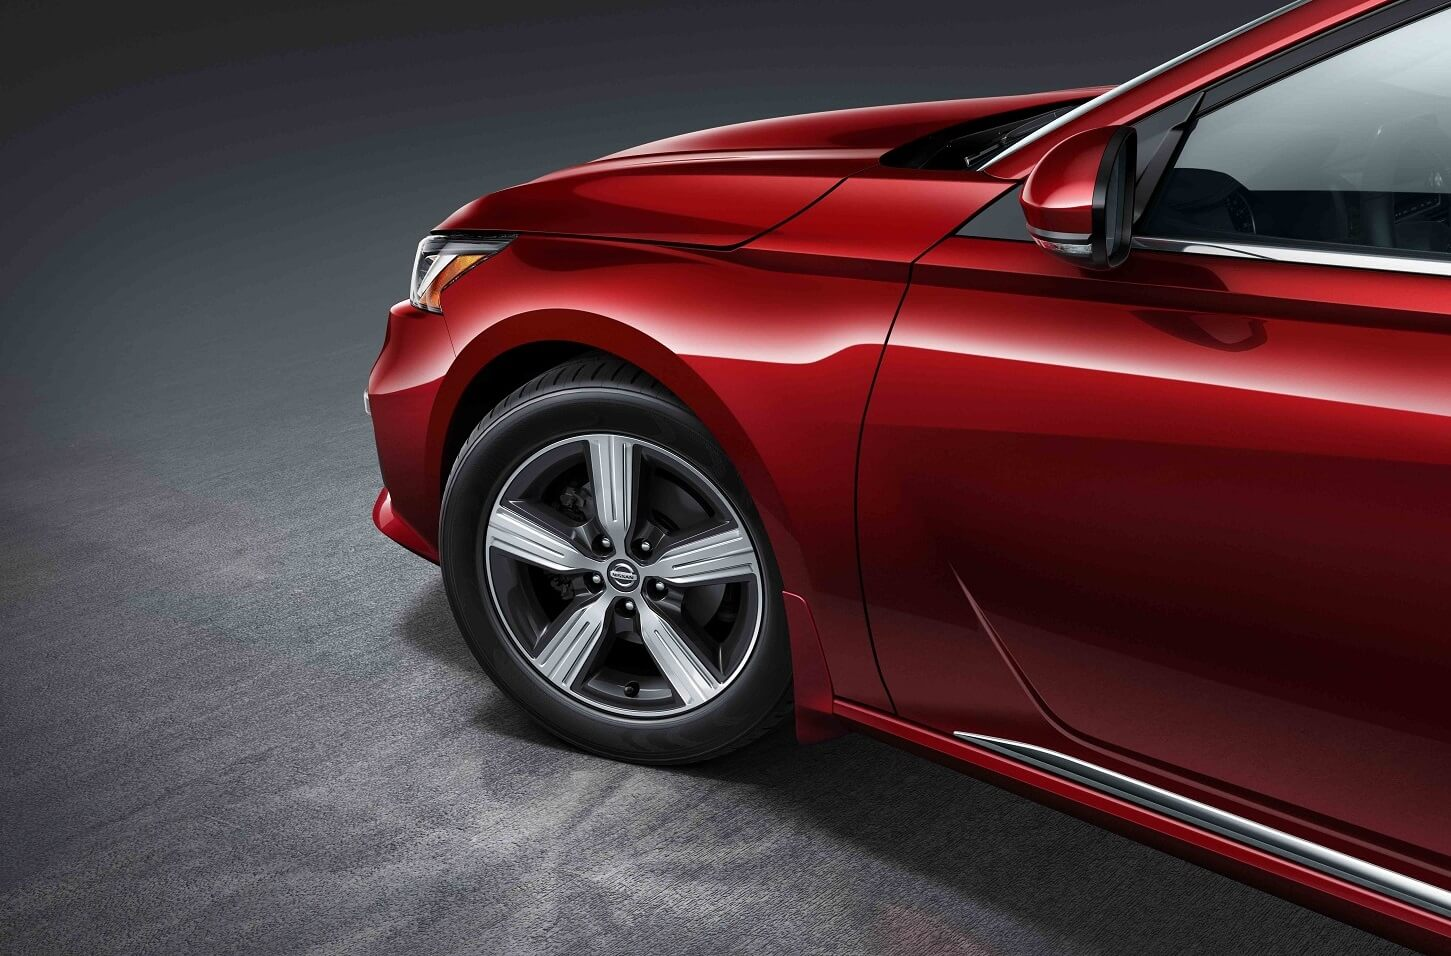 2020 Nissan Altima Engine Specs